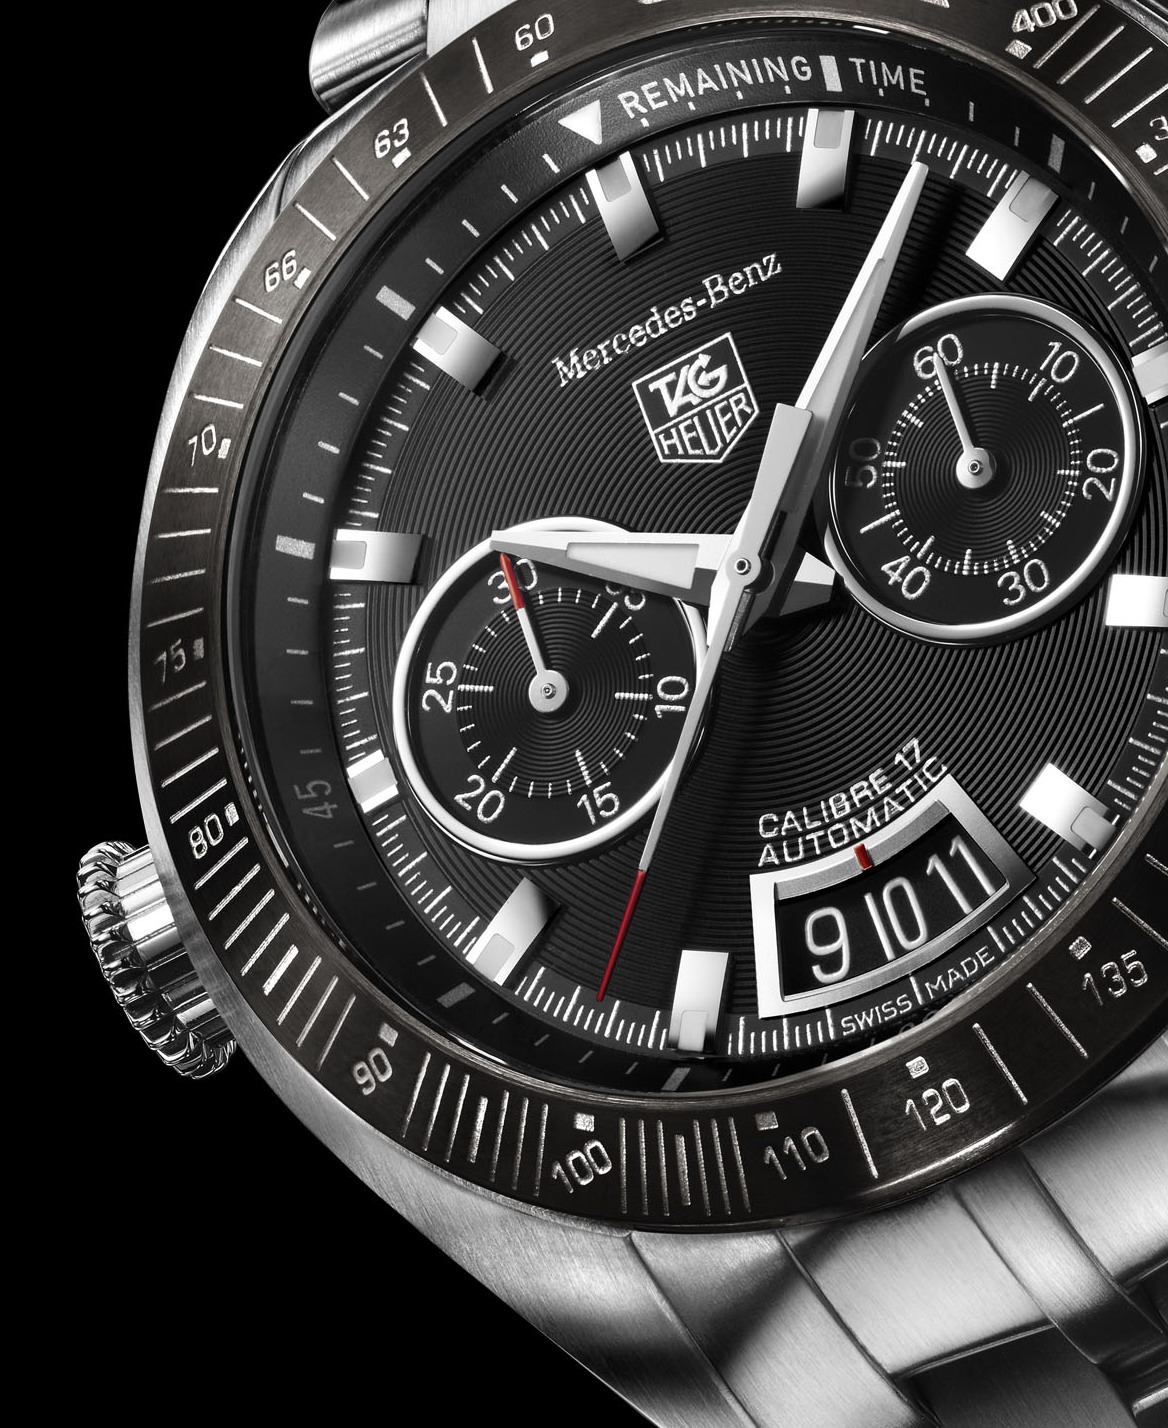 Tag heuer slr for mercedes benz news gallery top speed for Mercedes benz tag